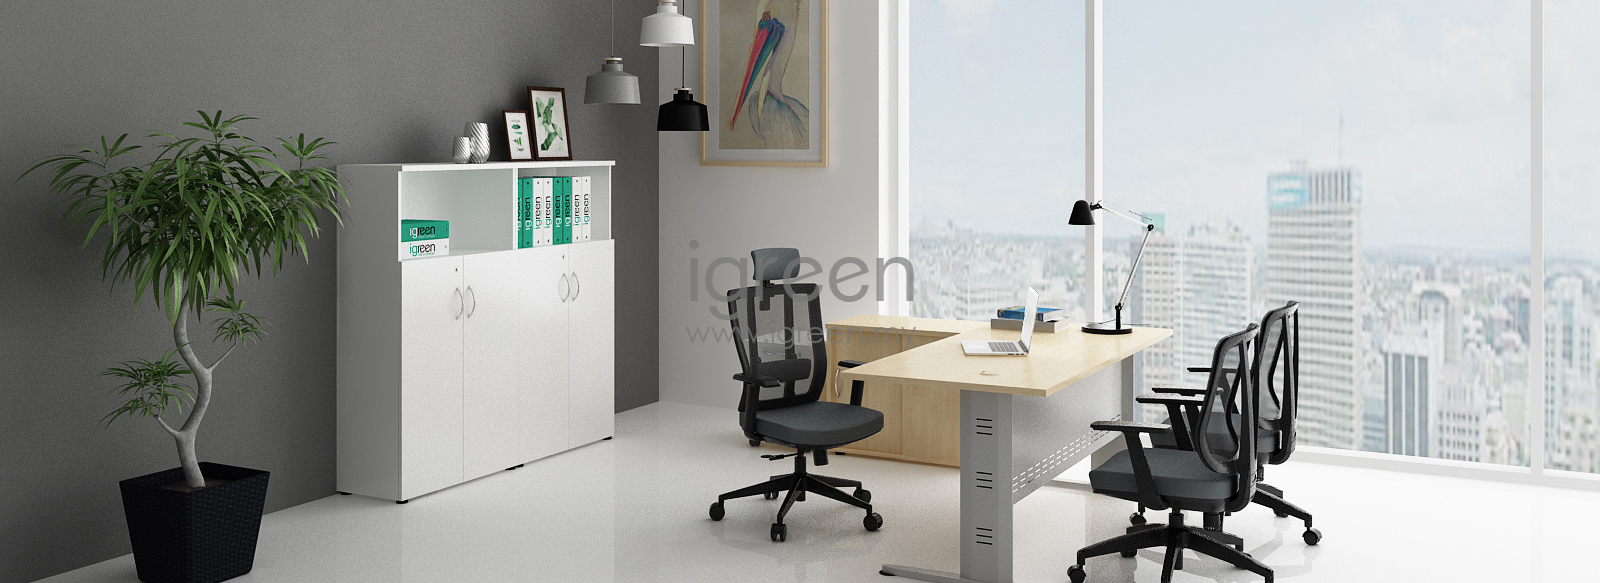 Paraline banner_executive room